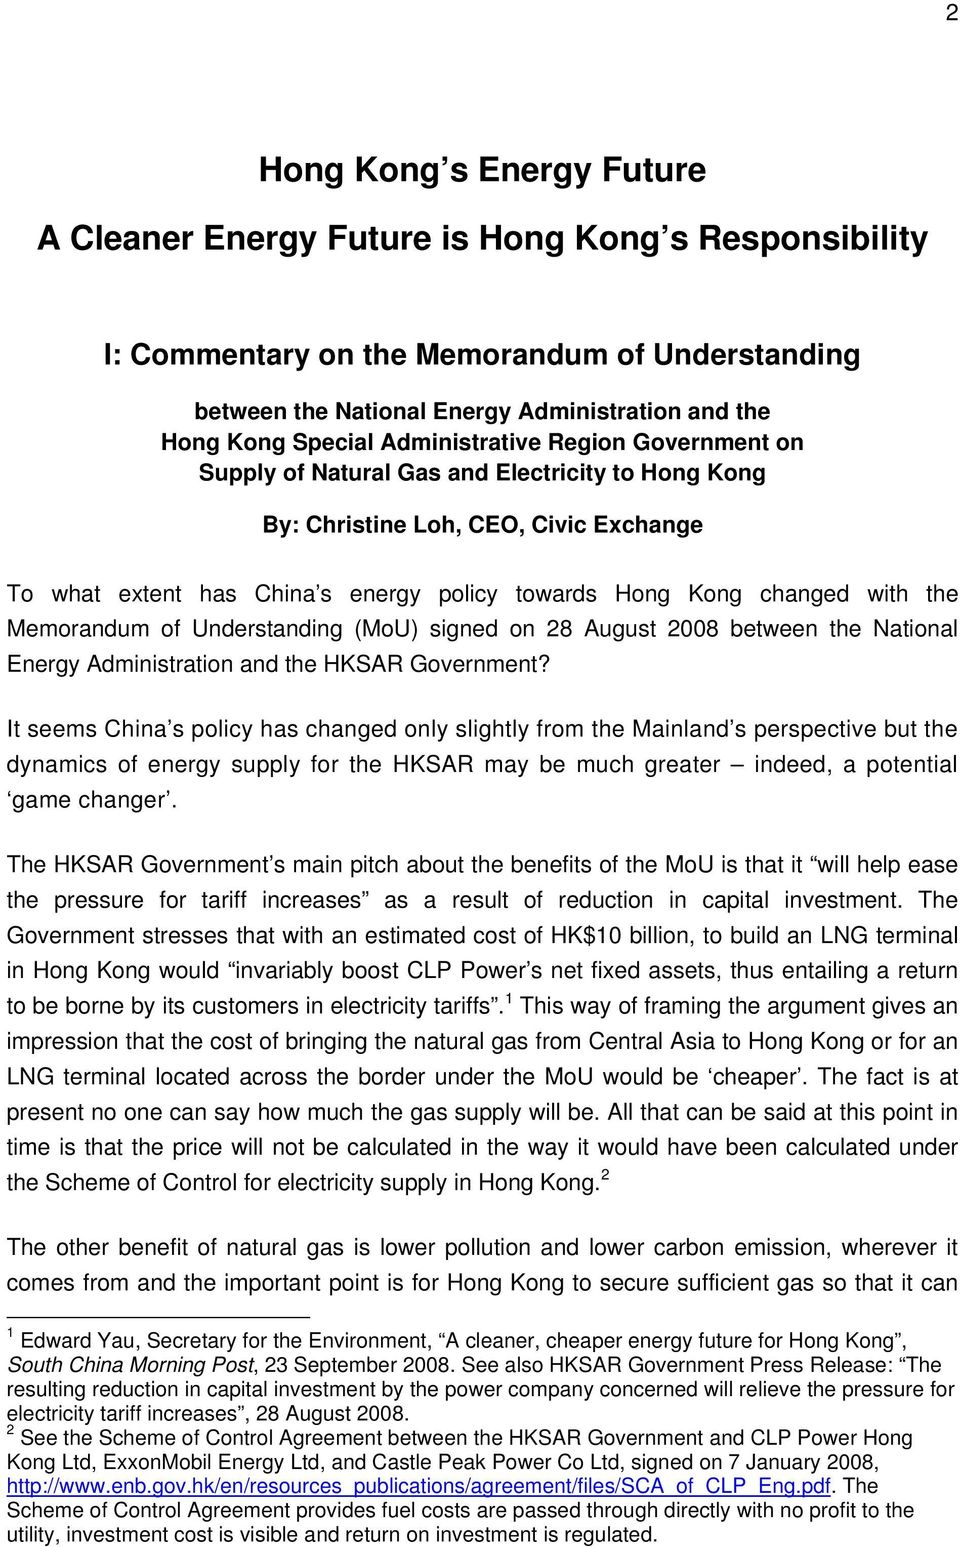 the Memorandum of Understanding (MoU) signed on 28 August 2008 between the National Energy Administration and the HKSAR Government?